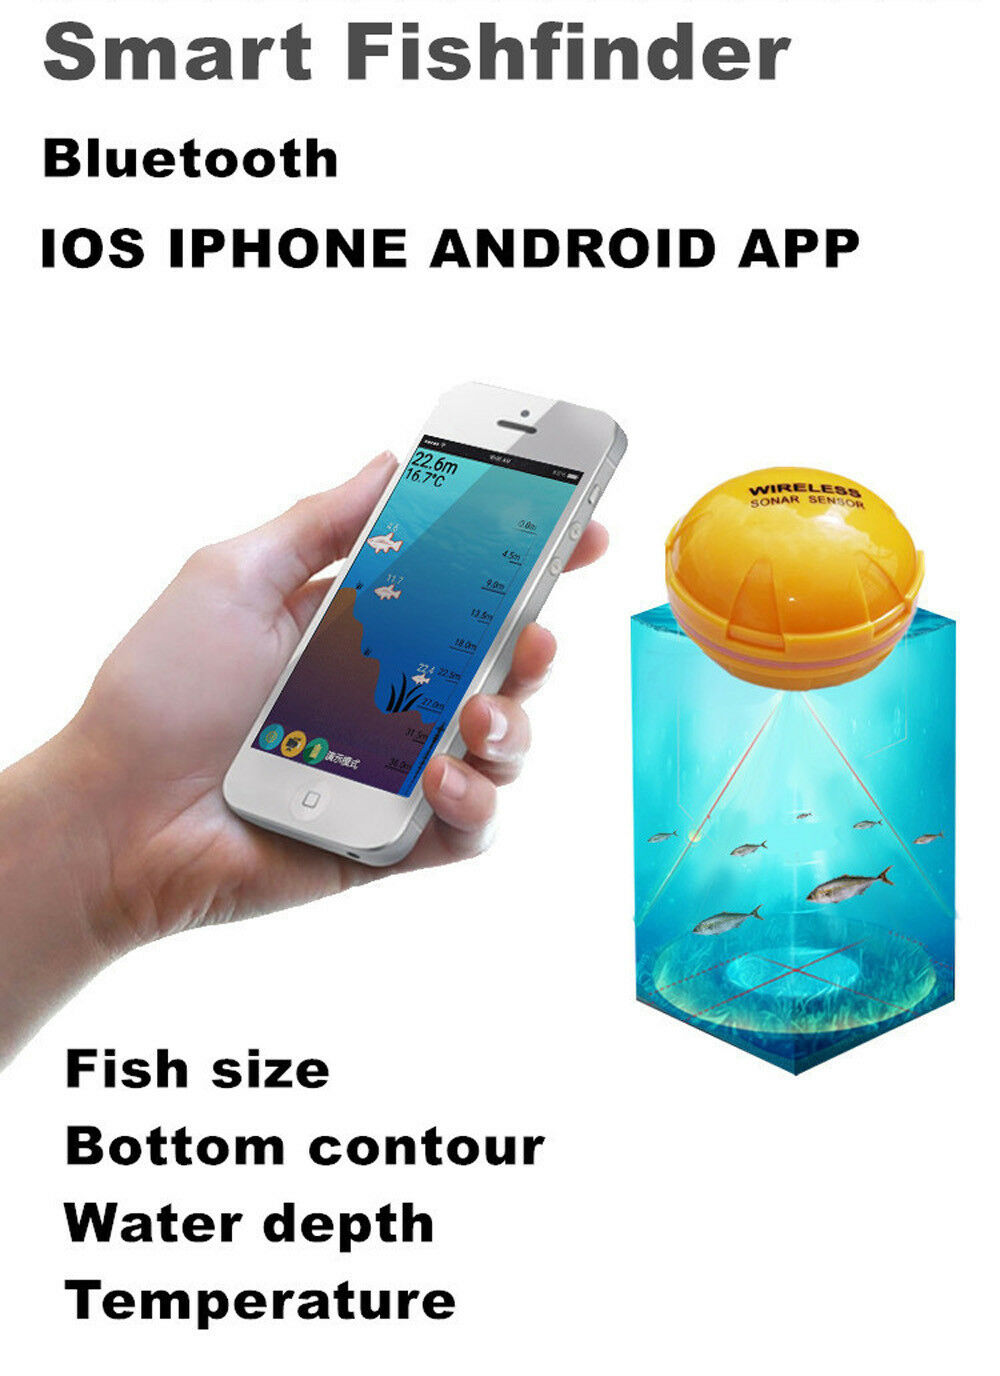 Wireless Sonar Fish Finder BT Sea Lake Fish Detect Detect Detect for iPhone Android Phone df279d